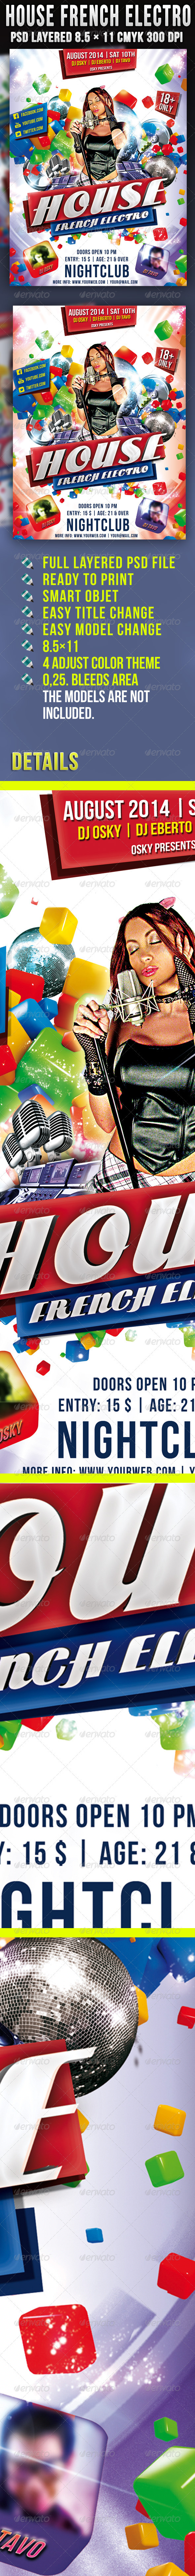 House French Electro - Clubs & Parties Events